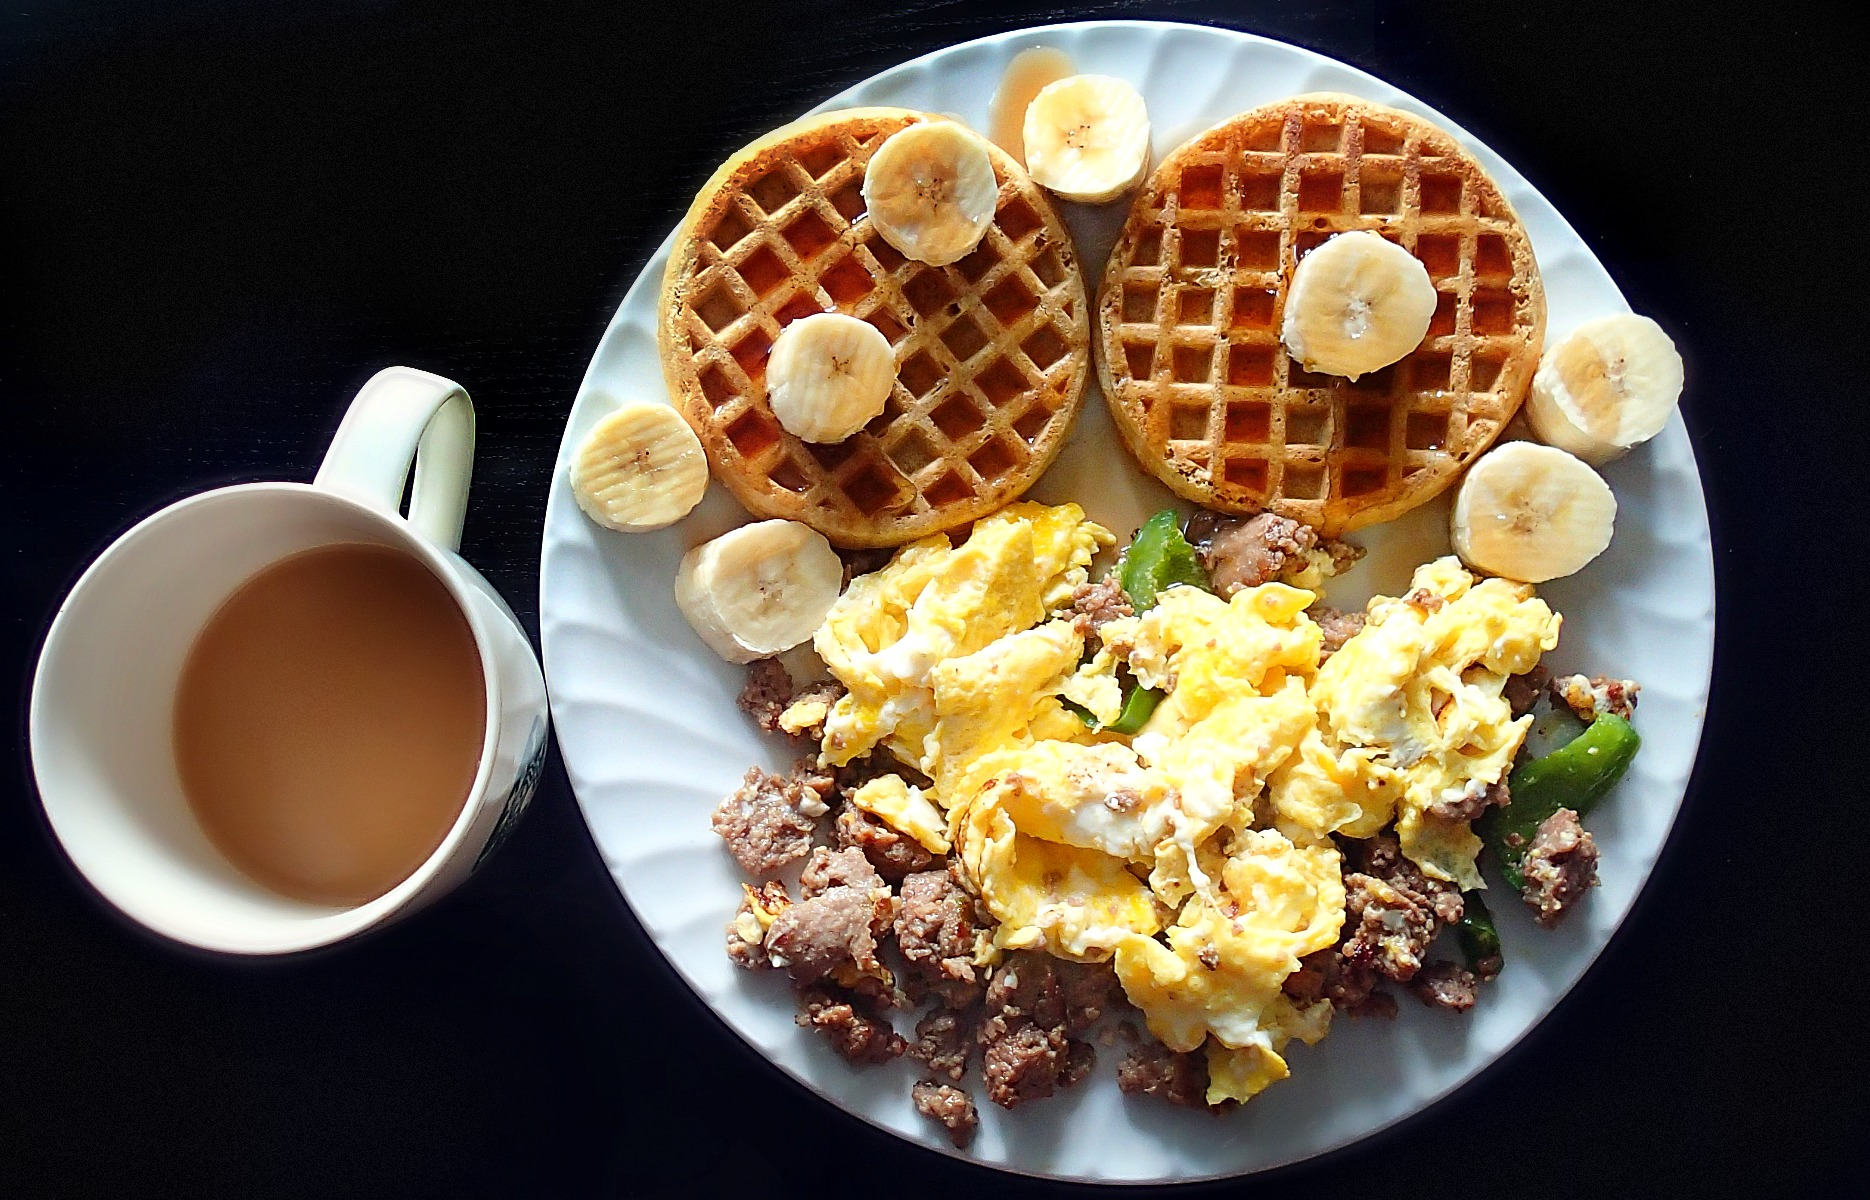 Breakfast Egg & Waffles